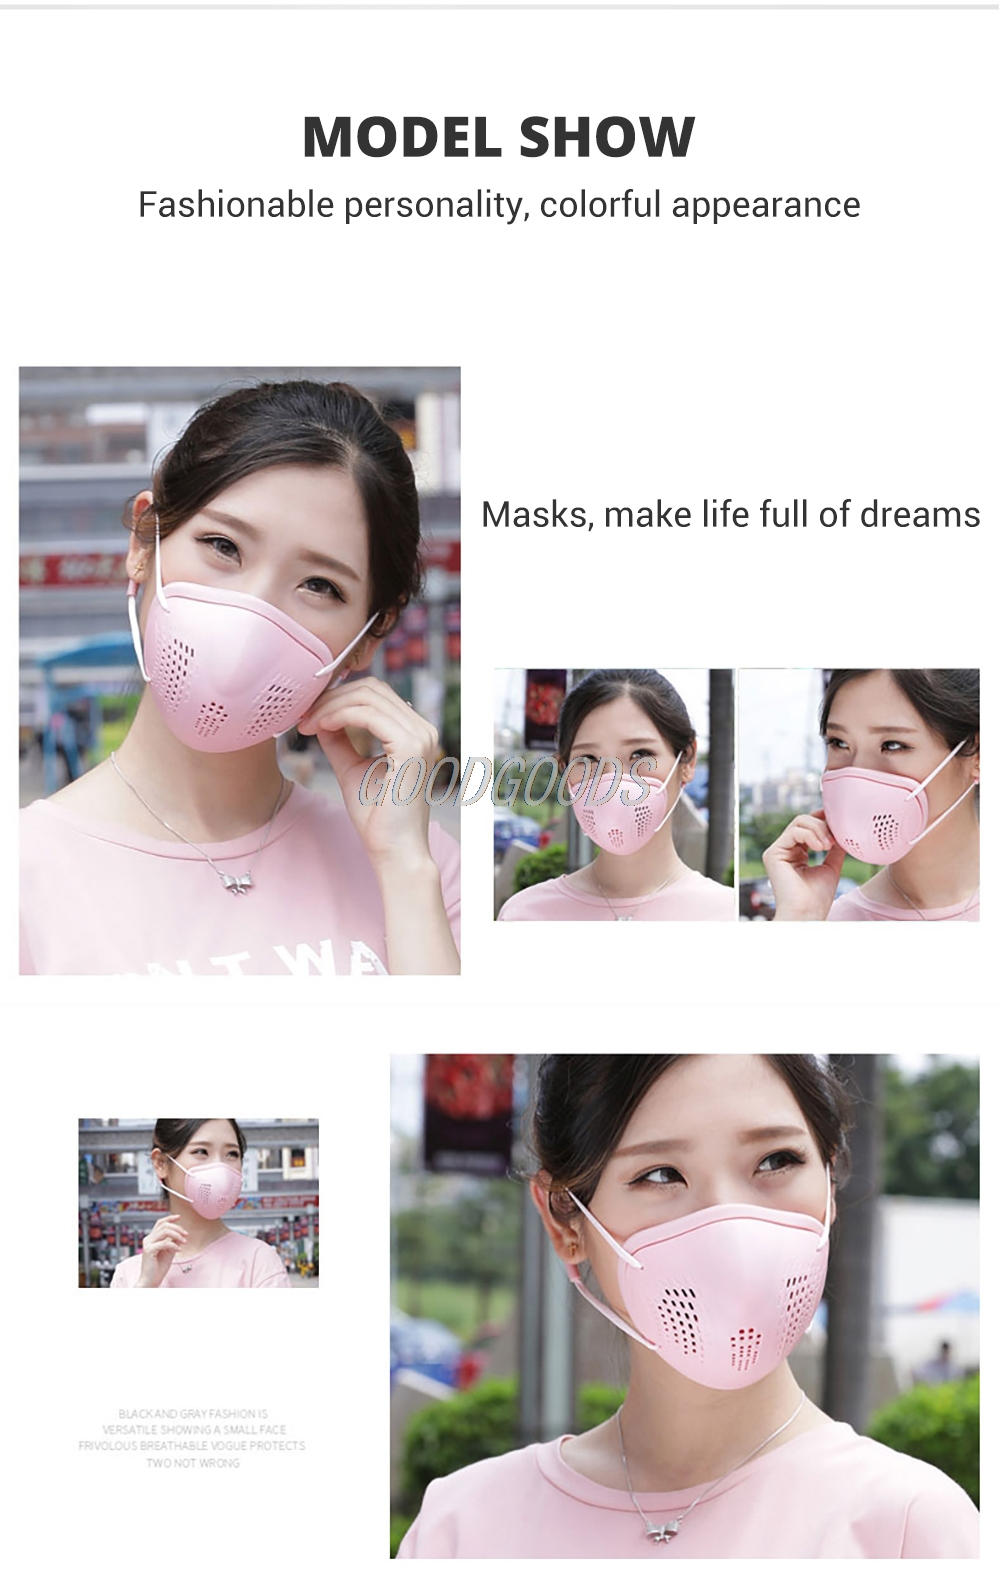 H285202d1701a4a3288421eea88c51eabc Silicon Face Mask Dustproof Mask Facial Protective Cover Washable Masks Anti-Dust Bacteria Proof Facemask PM2.5 Pollution